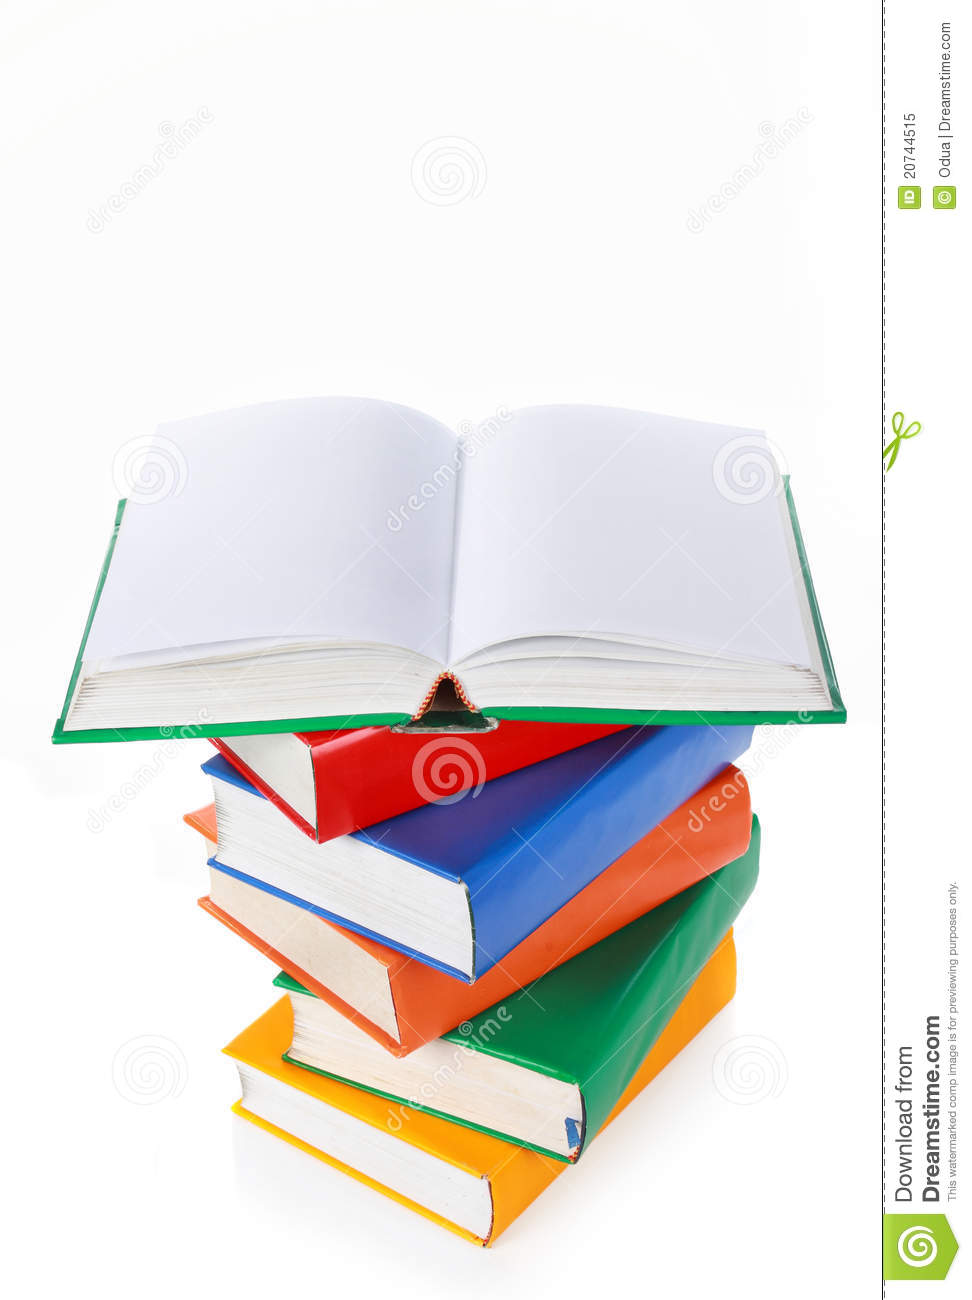 Book Cover Design Isolated Over Colorful Background : Stack of colorful books one book wide open on top royalty